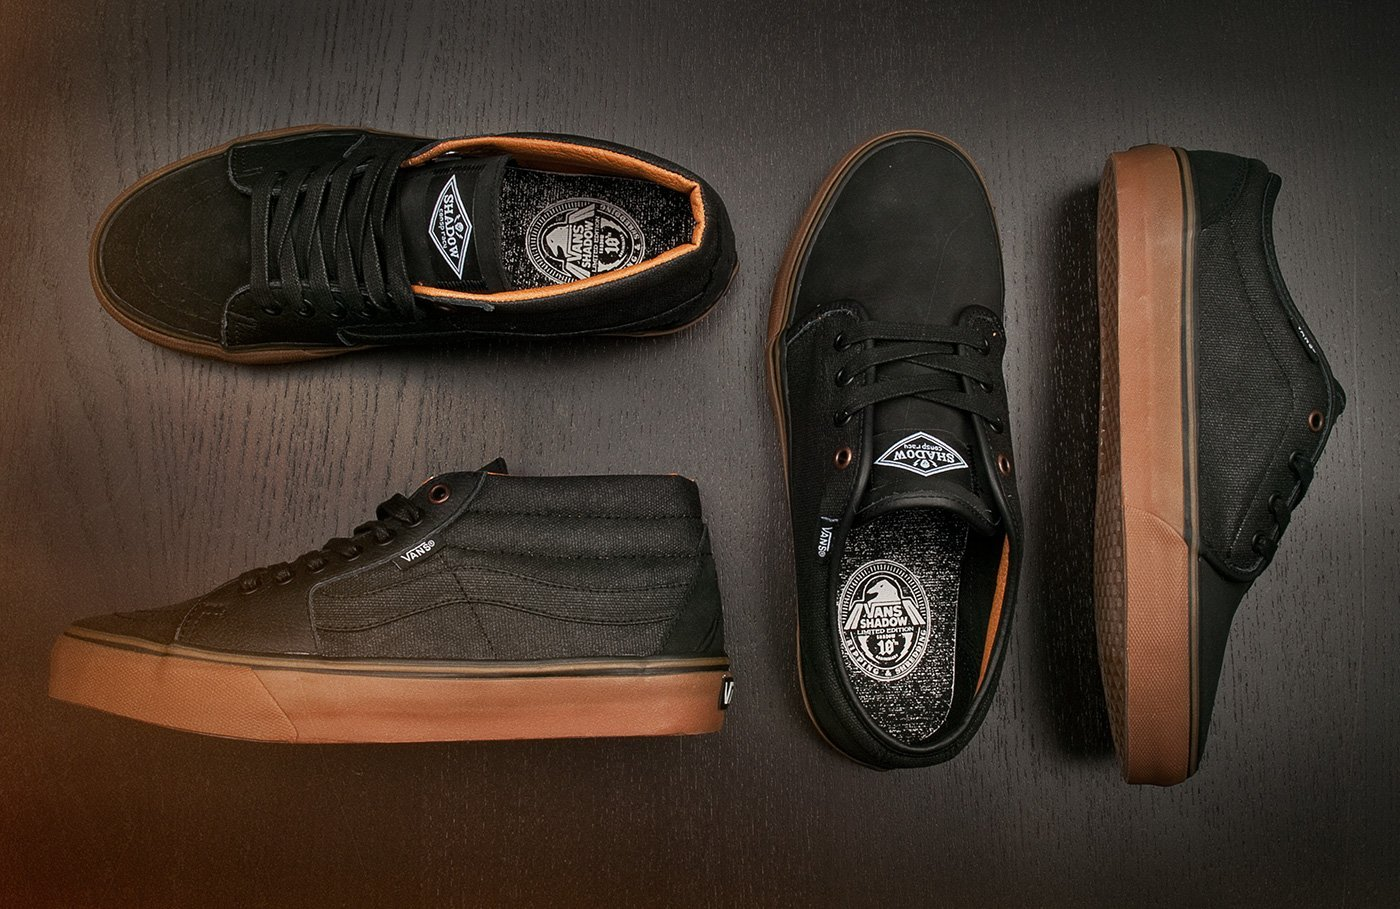 Womens Vans shoes are made with only high-quality materials to ensure lasting comfort and style